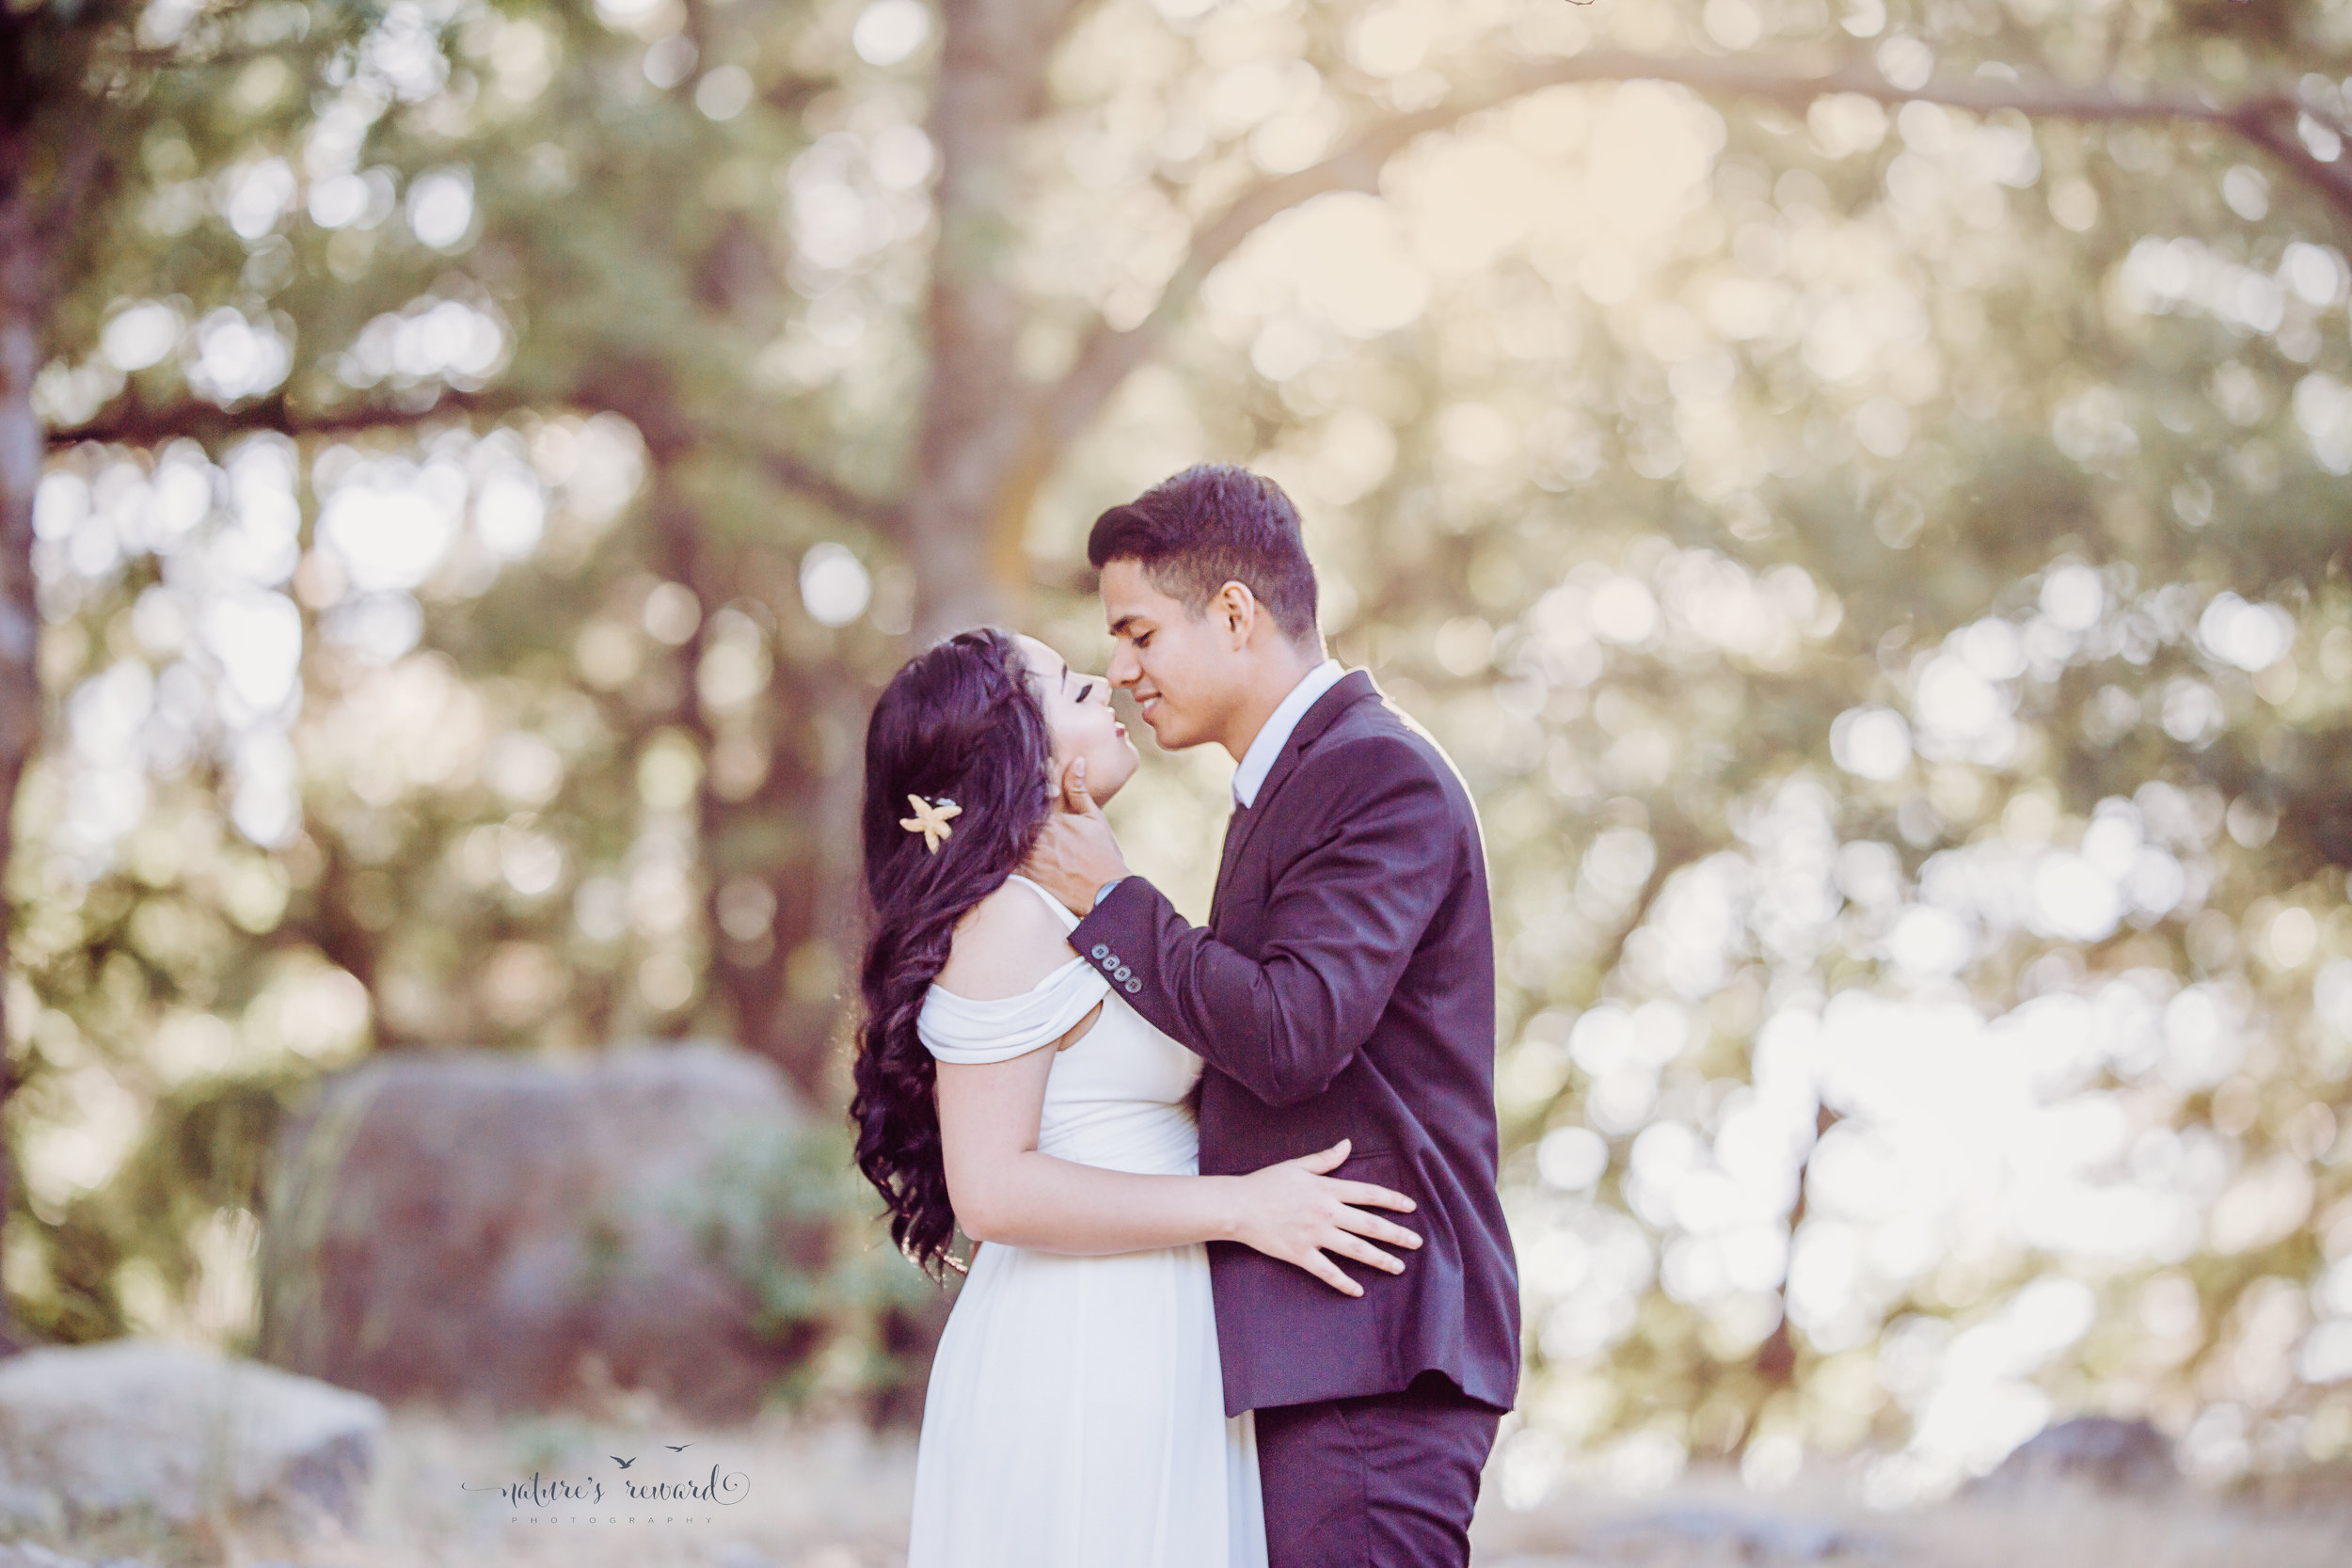 And just before they kiss, a bride and groom portrait By Nature's Reward Photography